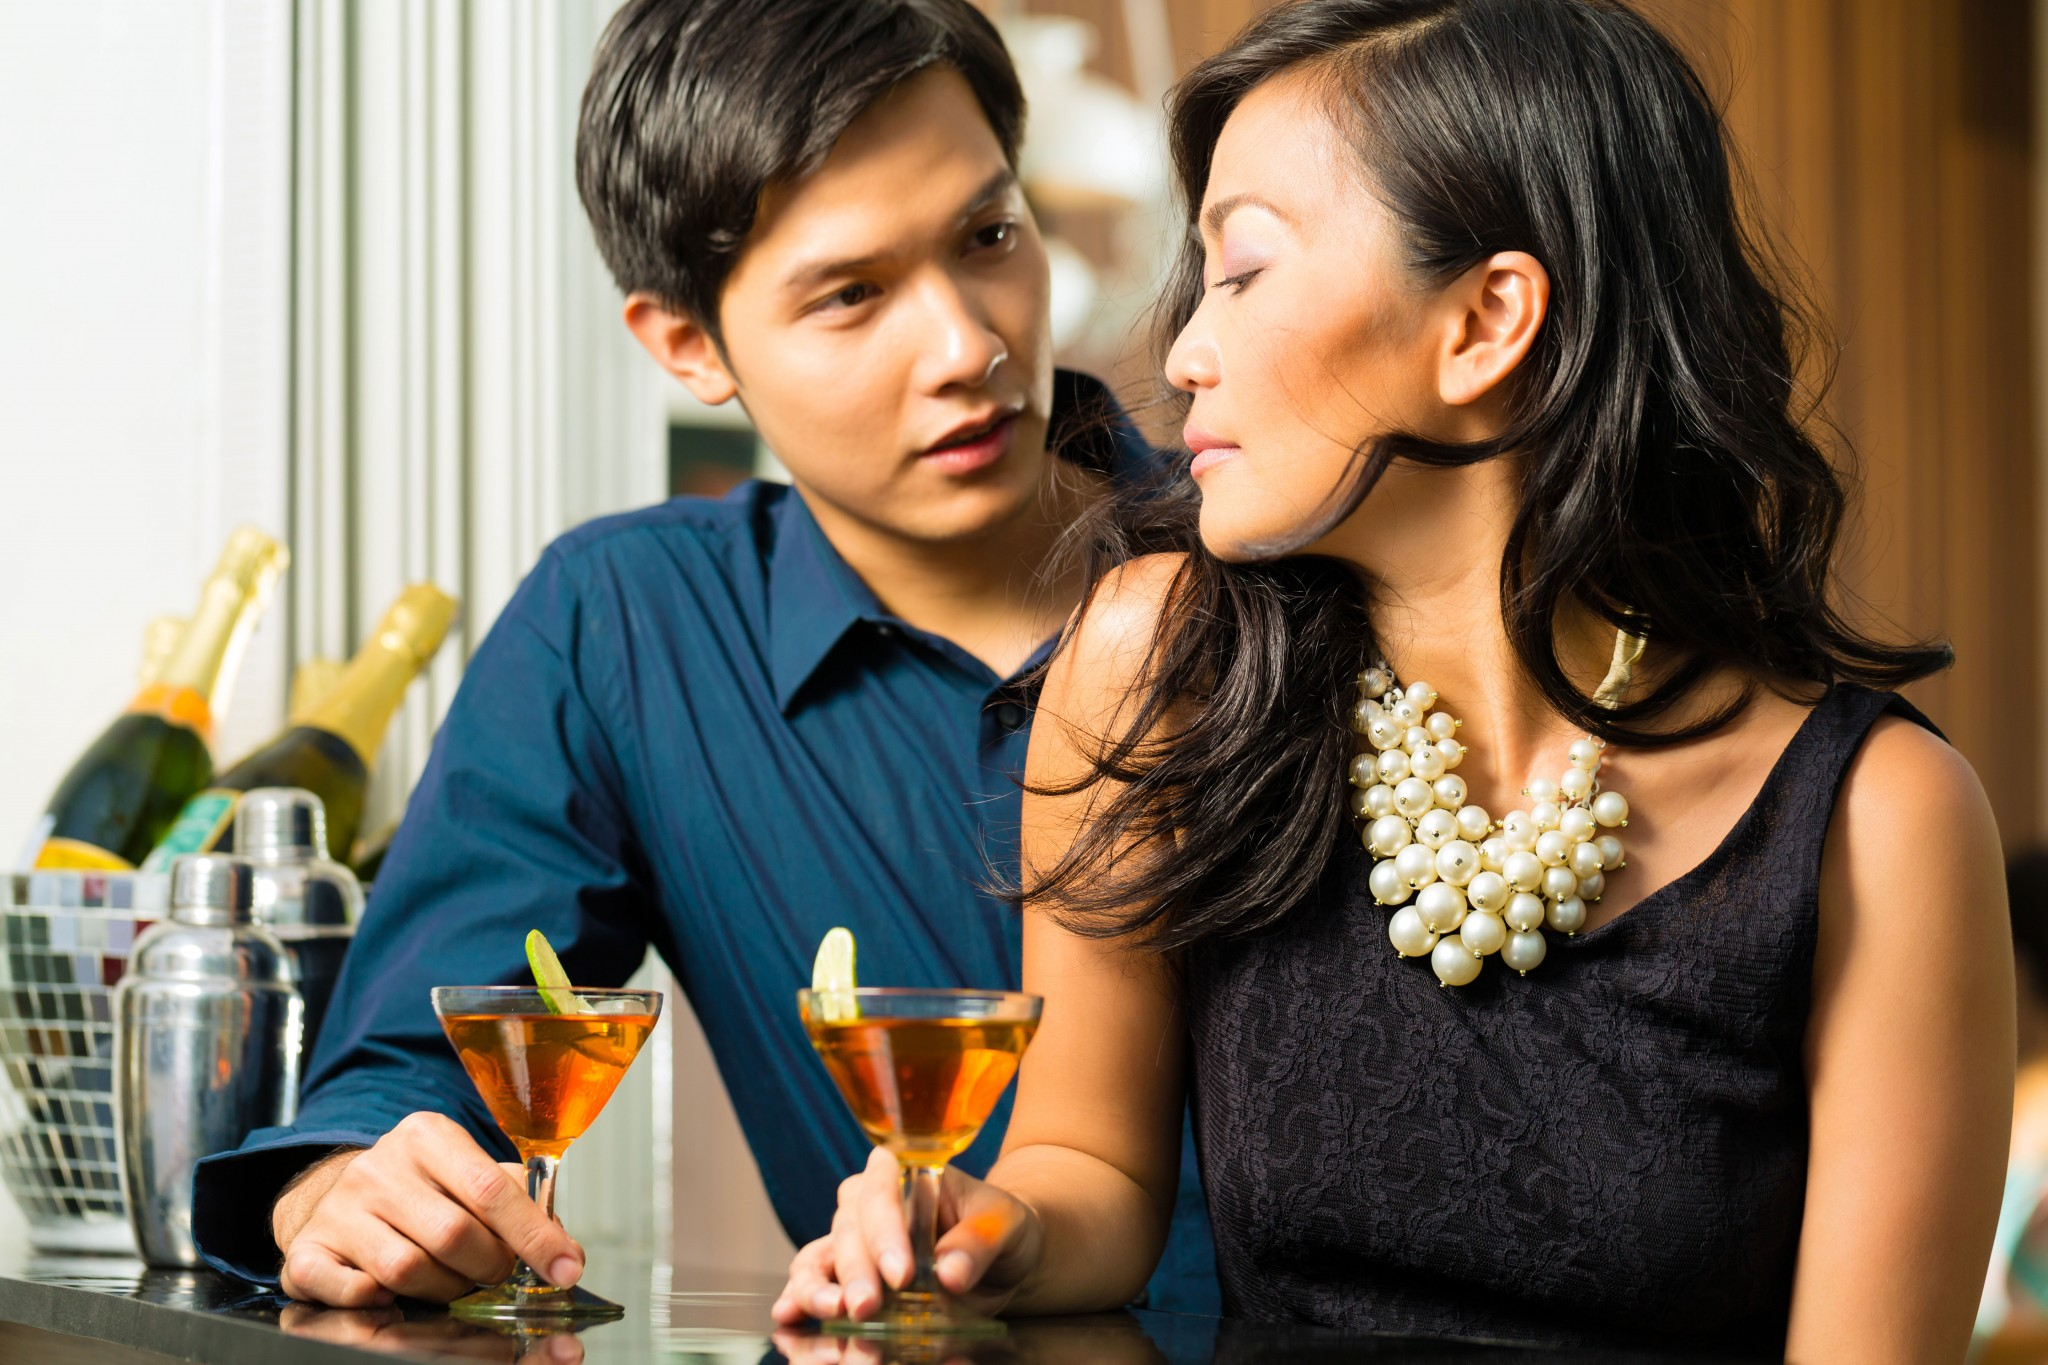 Body Language Signs Men Do While Flirting